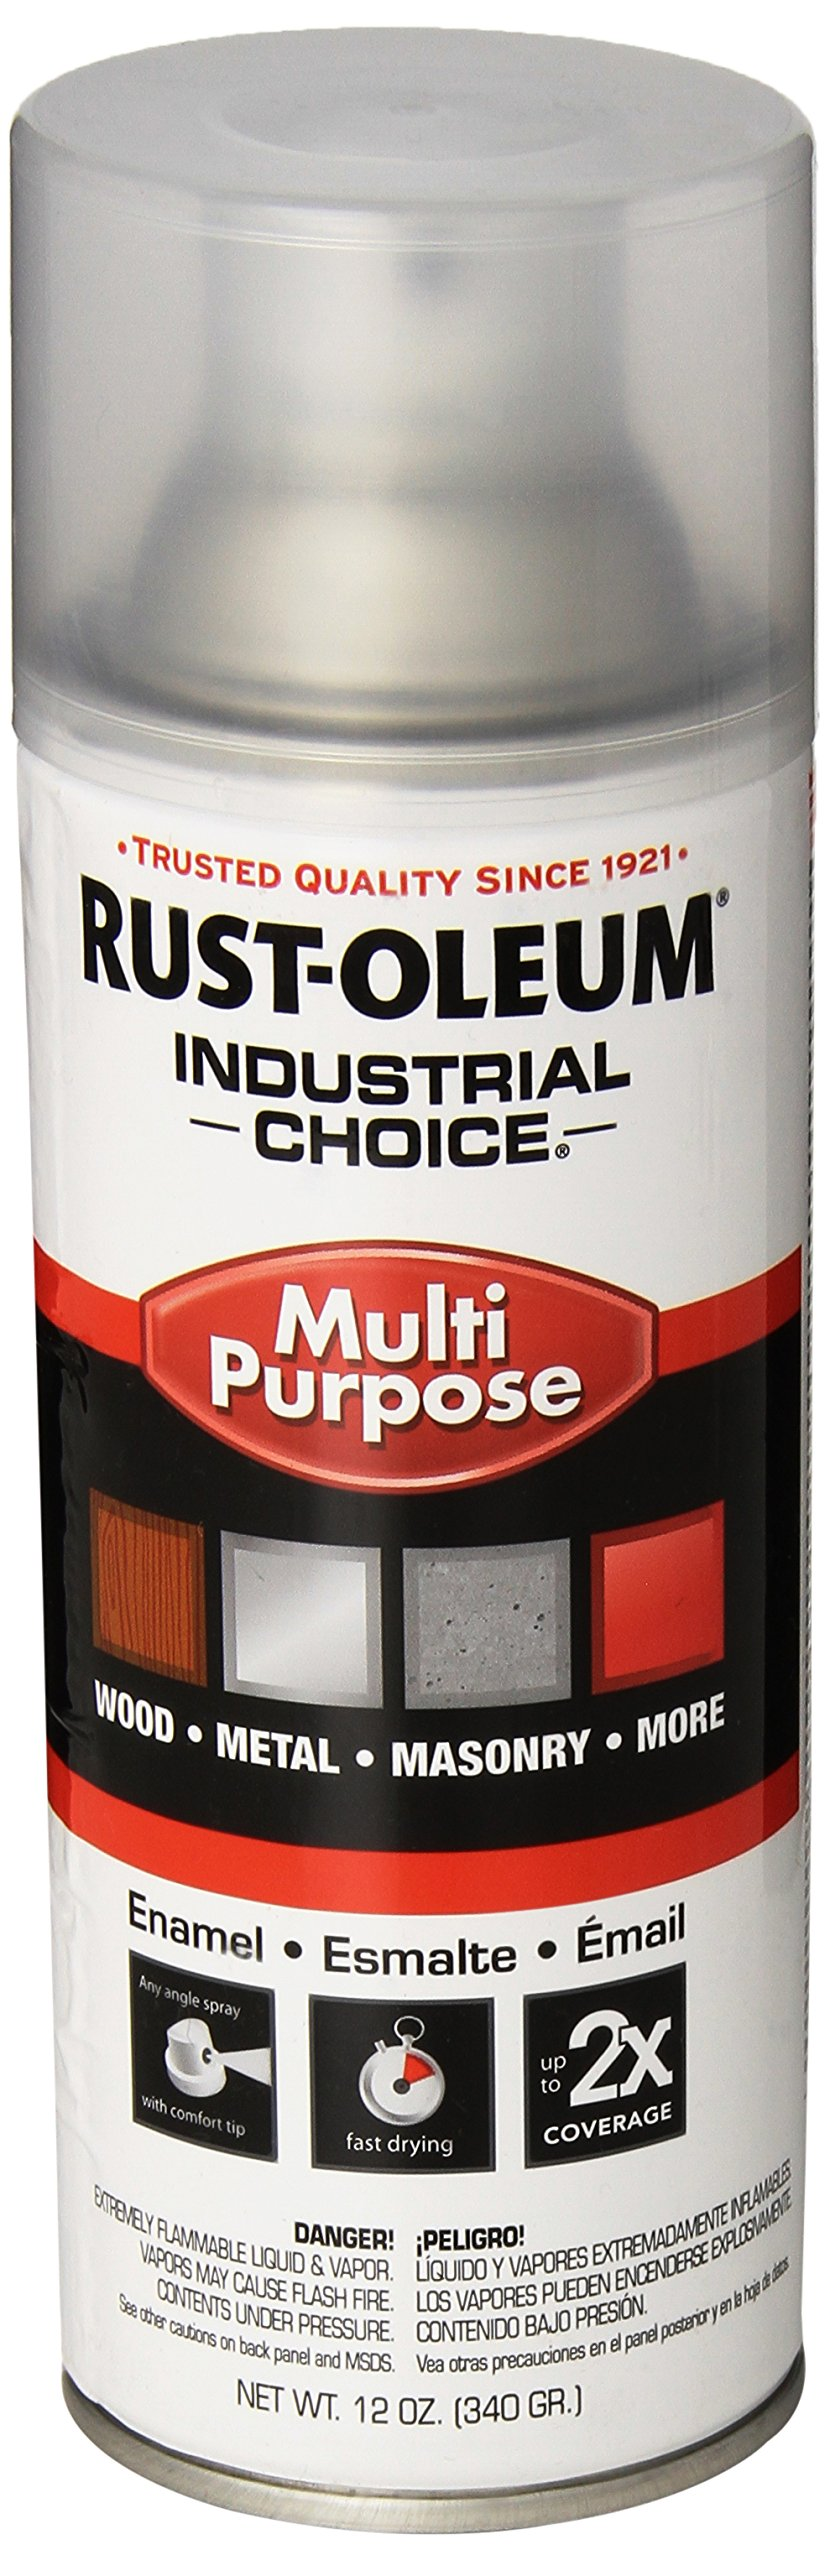 Rust-Oleum 1610830 Crystal Clear 1600 System General Purpose Enamel Spray Paint, 16 fl. oz. container, 12 oz. weight fill, Can (Pack of 6) by Rust-Oleum